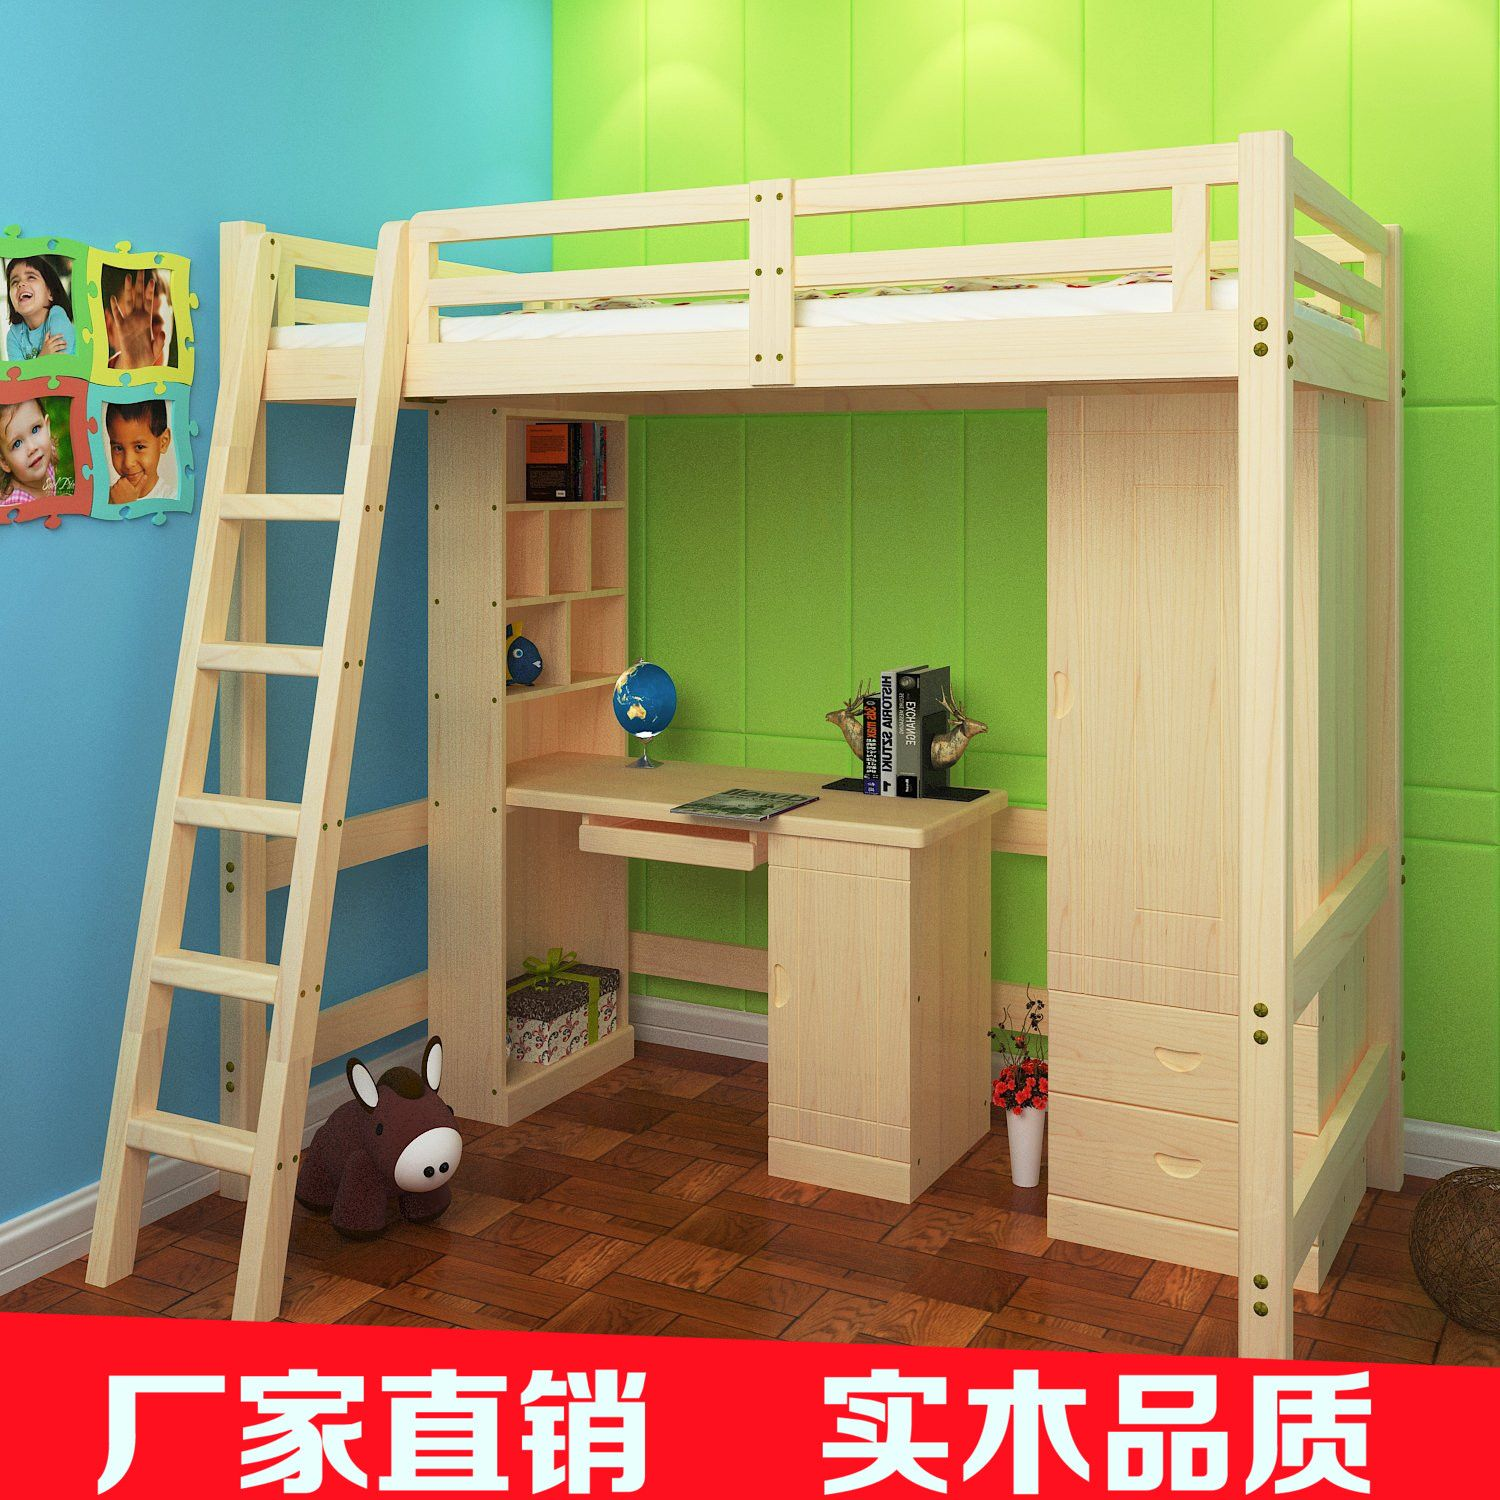 1100 Y Cheap Elevated Bed Wood Bed Single Bed Double Bed Bunk Bed